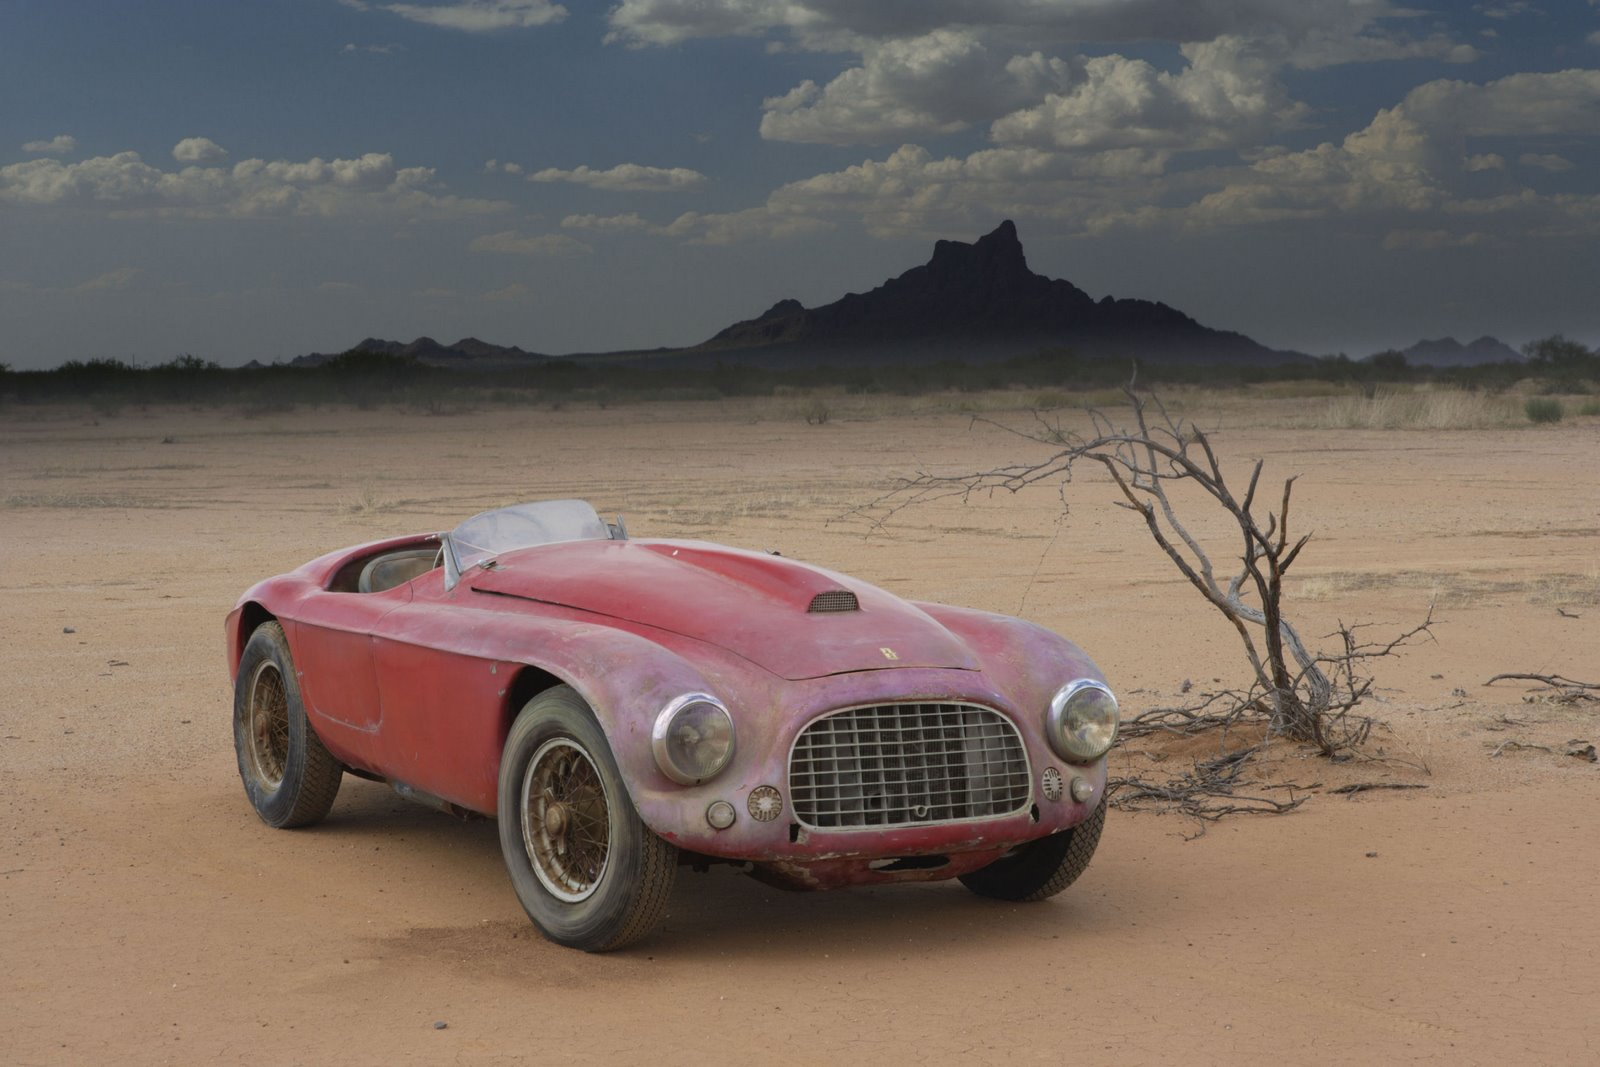 Landscapes cars deserts Ferrari HD Wallpaper